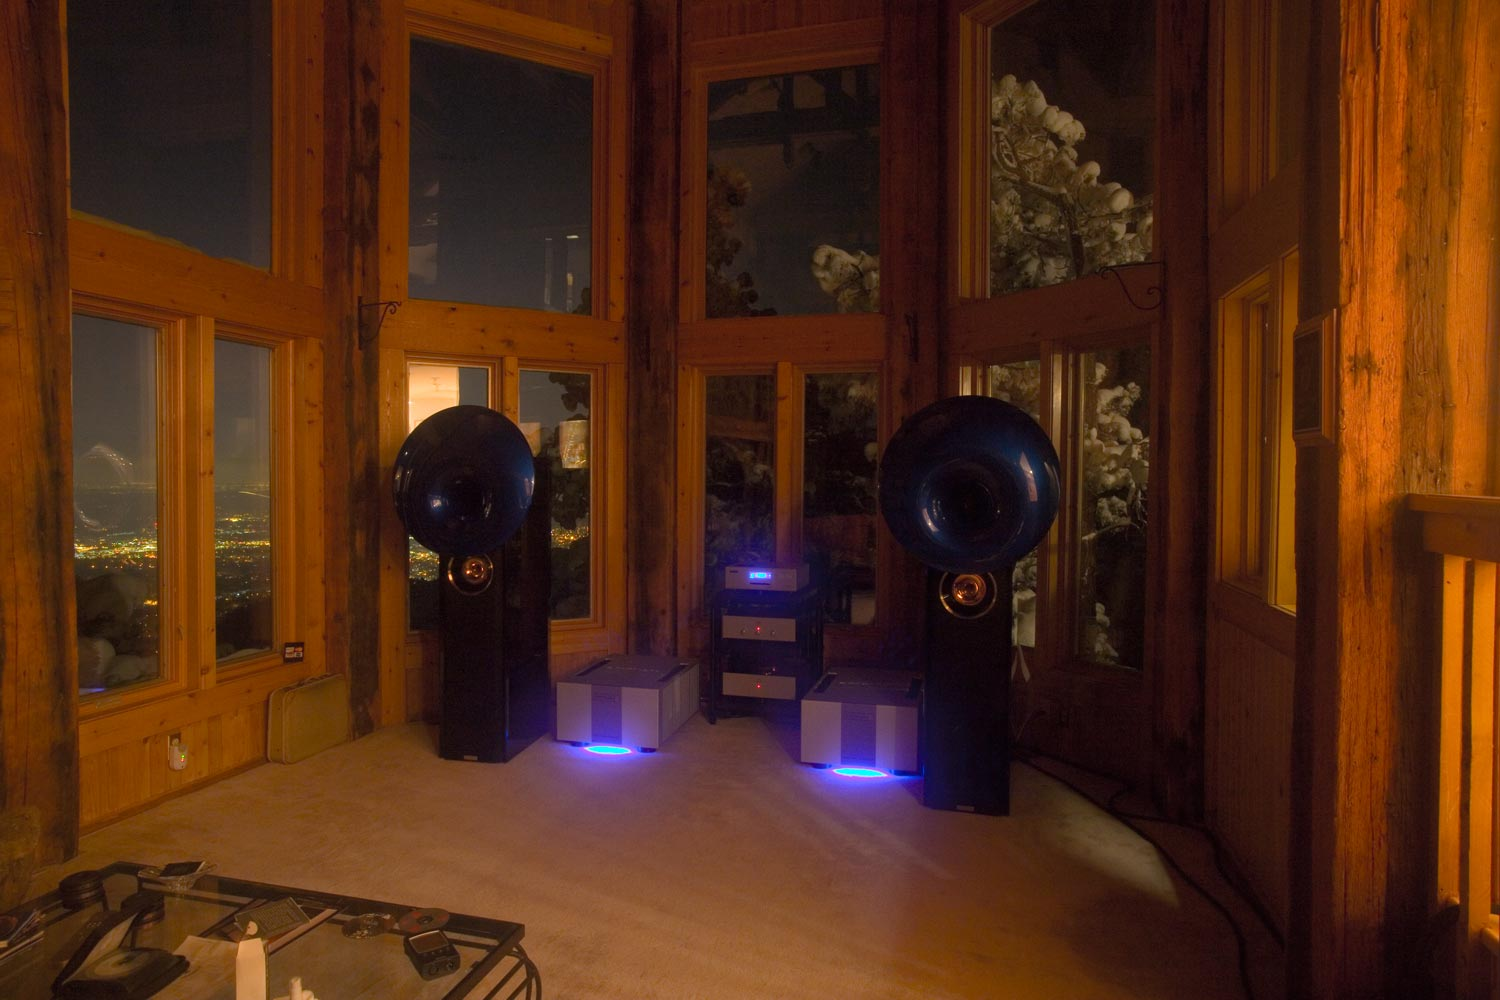 IMG_0716-2-emm-labs-mtrx-amps-and-acapella-atlas-speakers-at-night